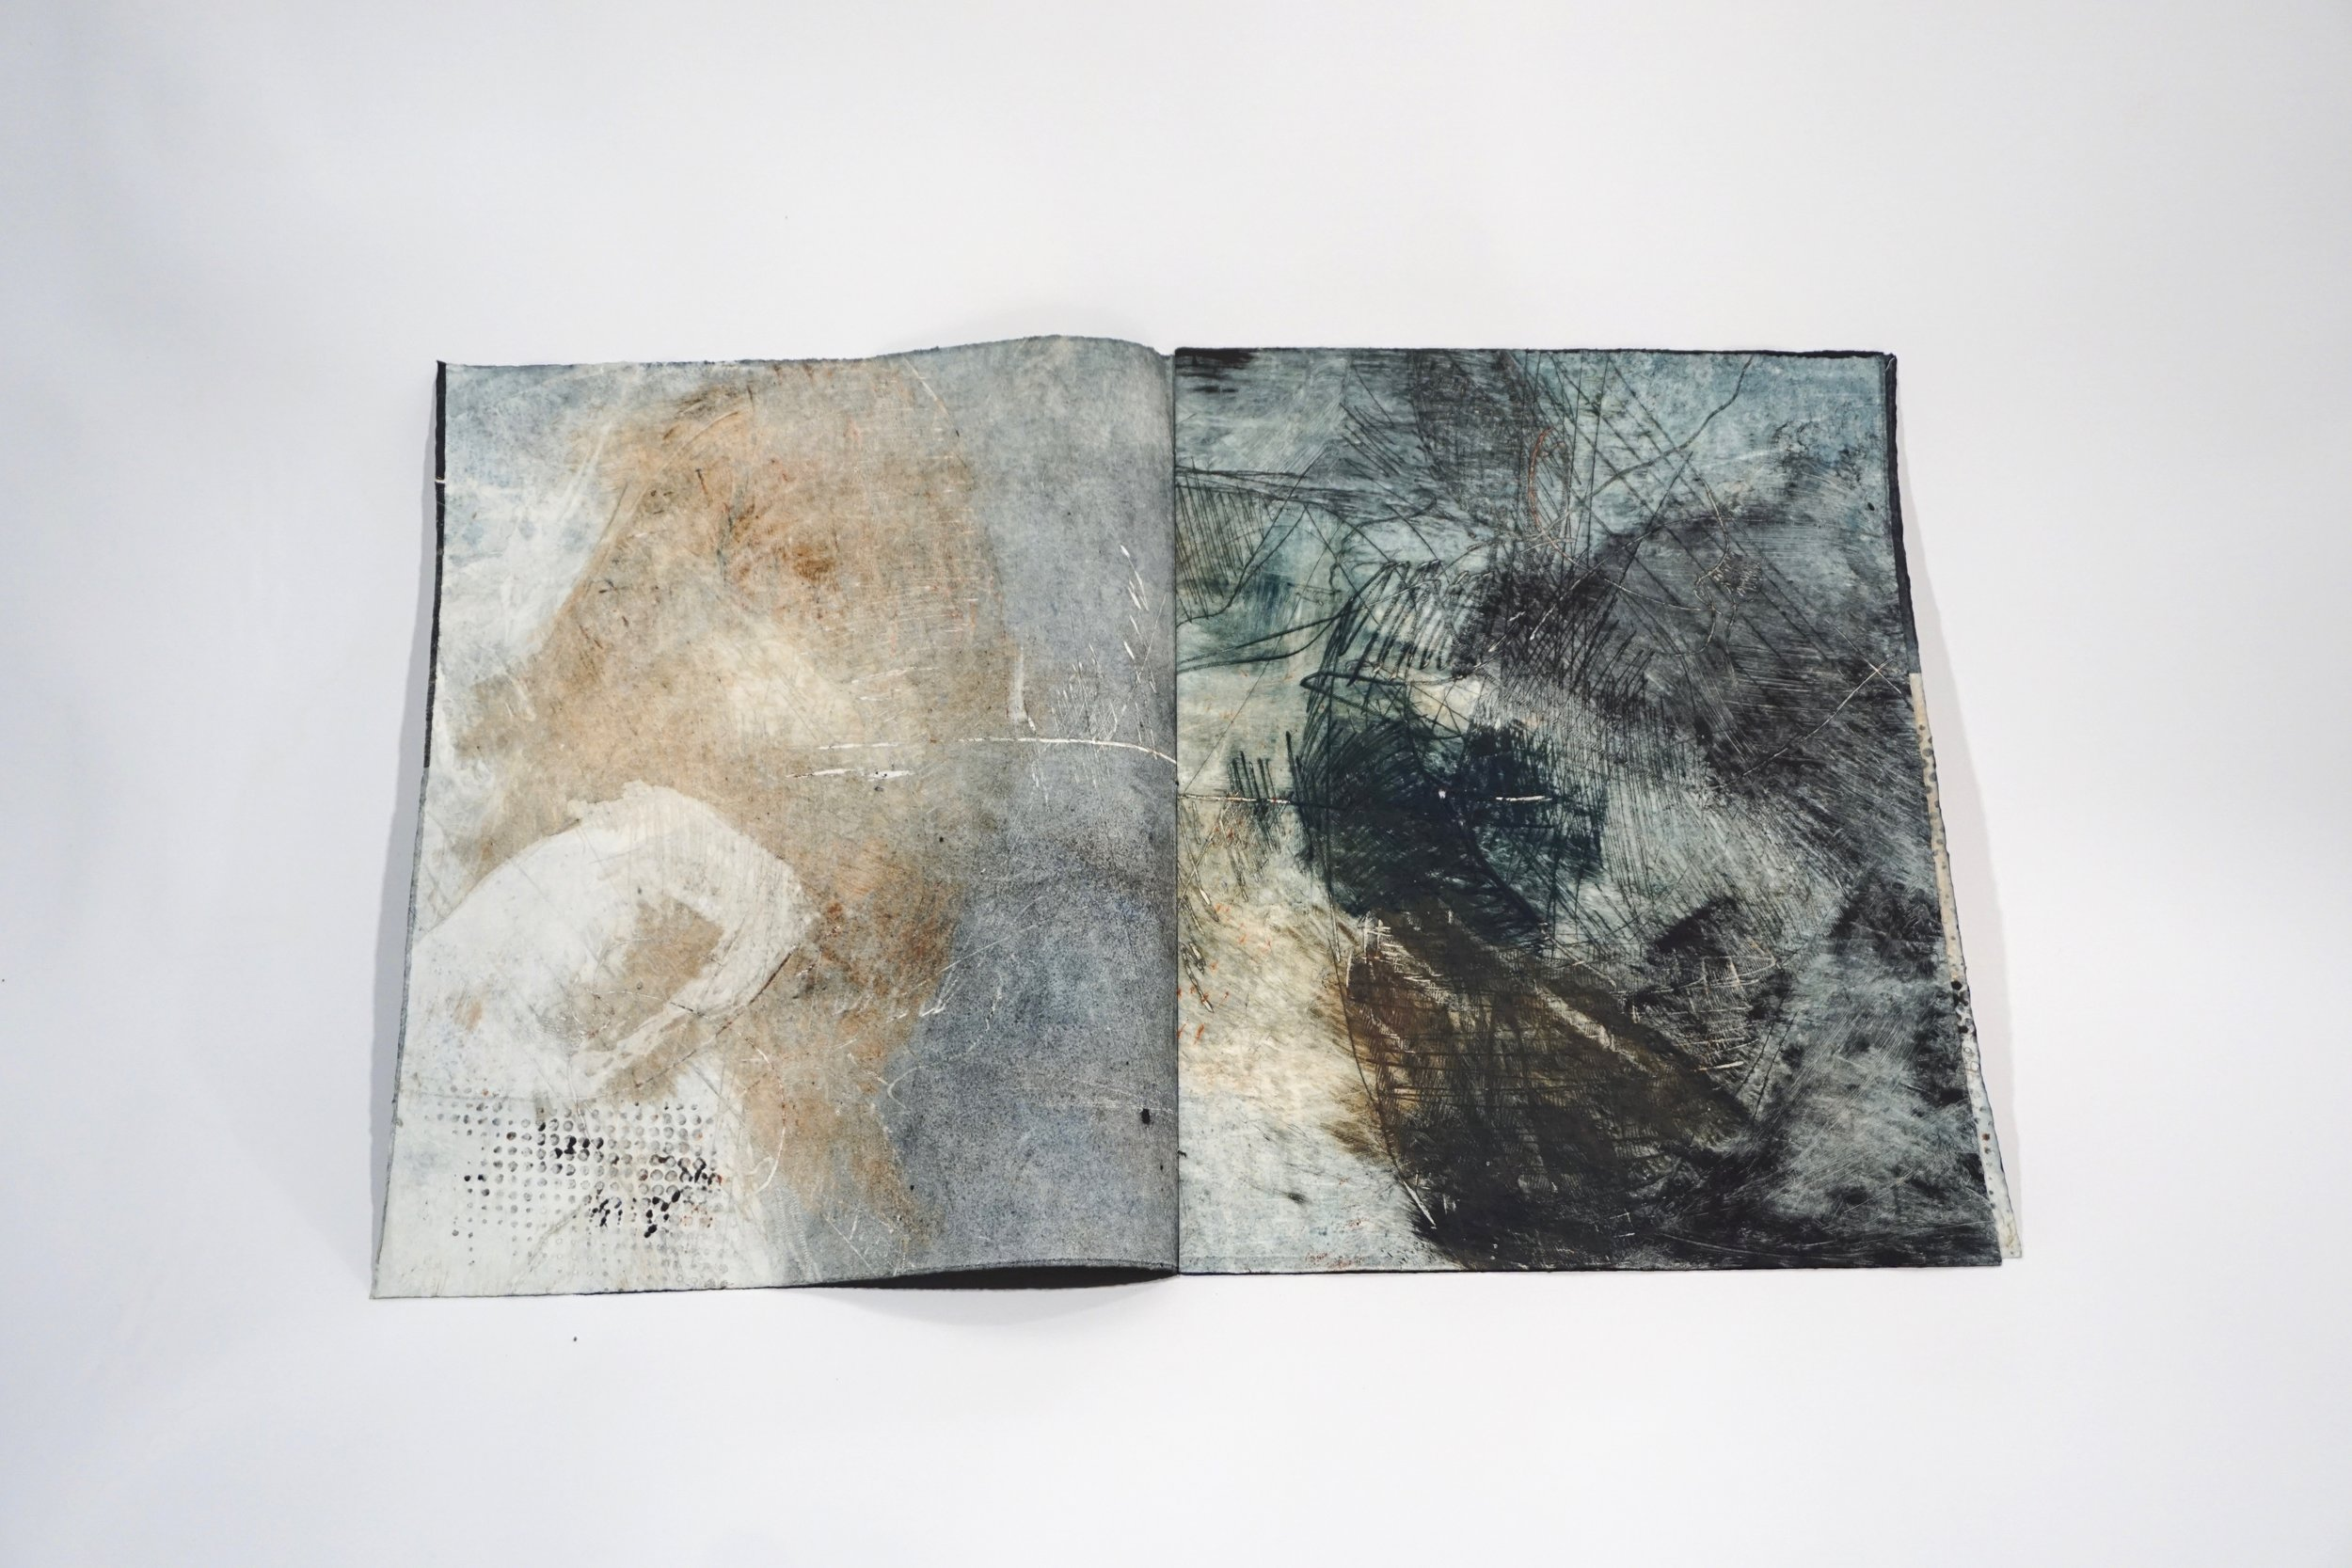 Untitled. Monotype book 16x13